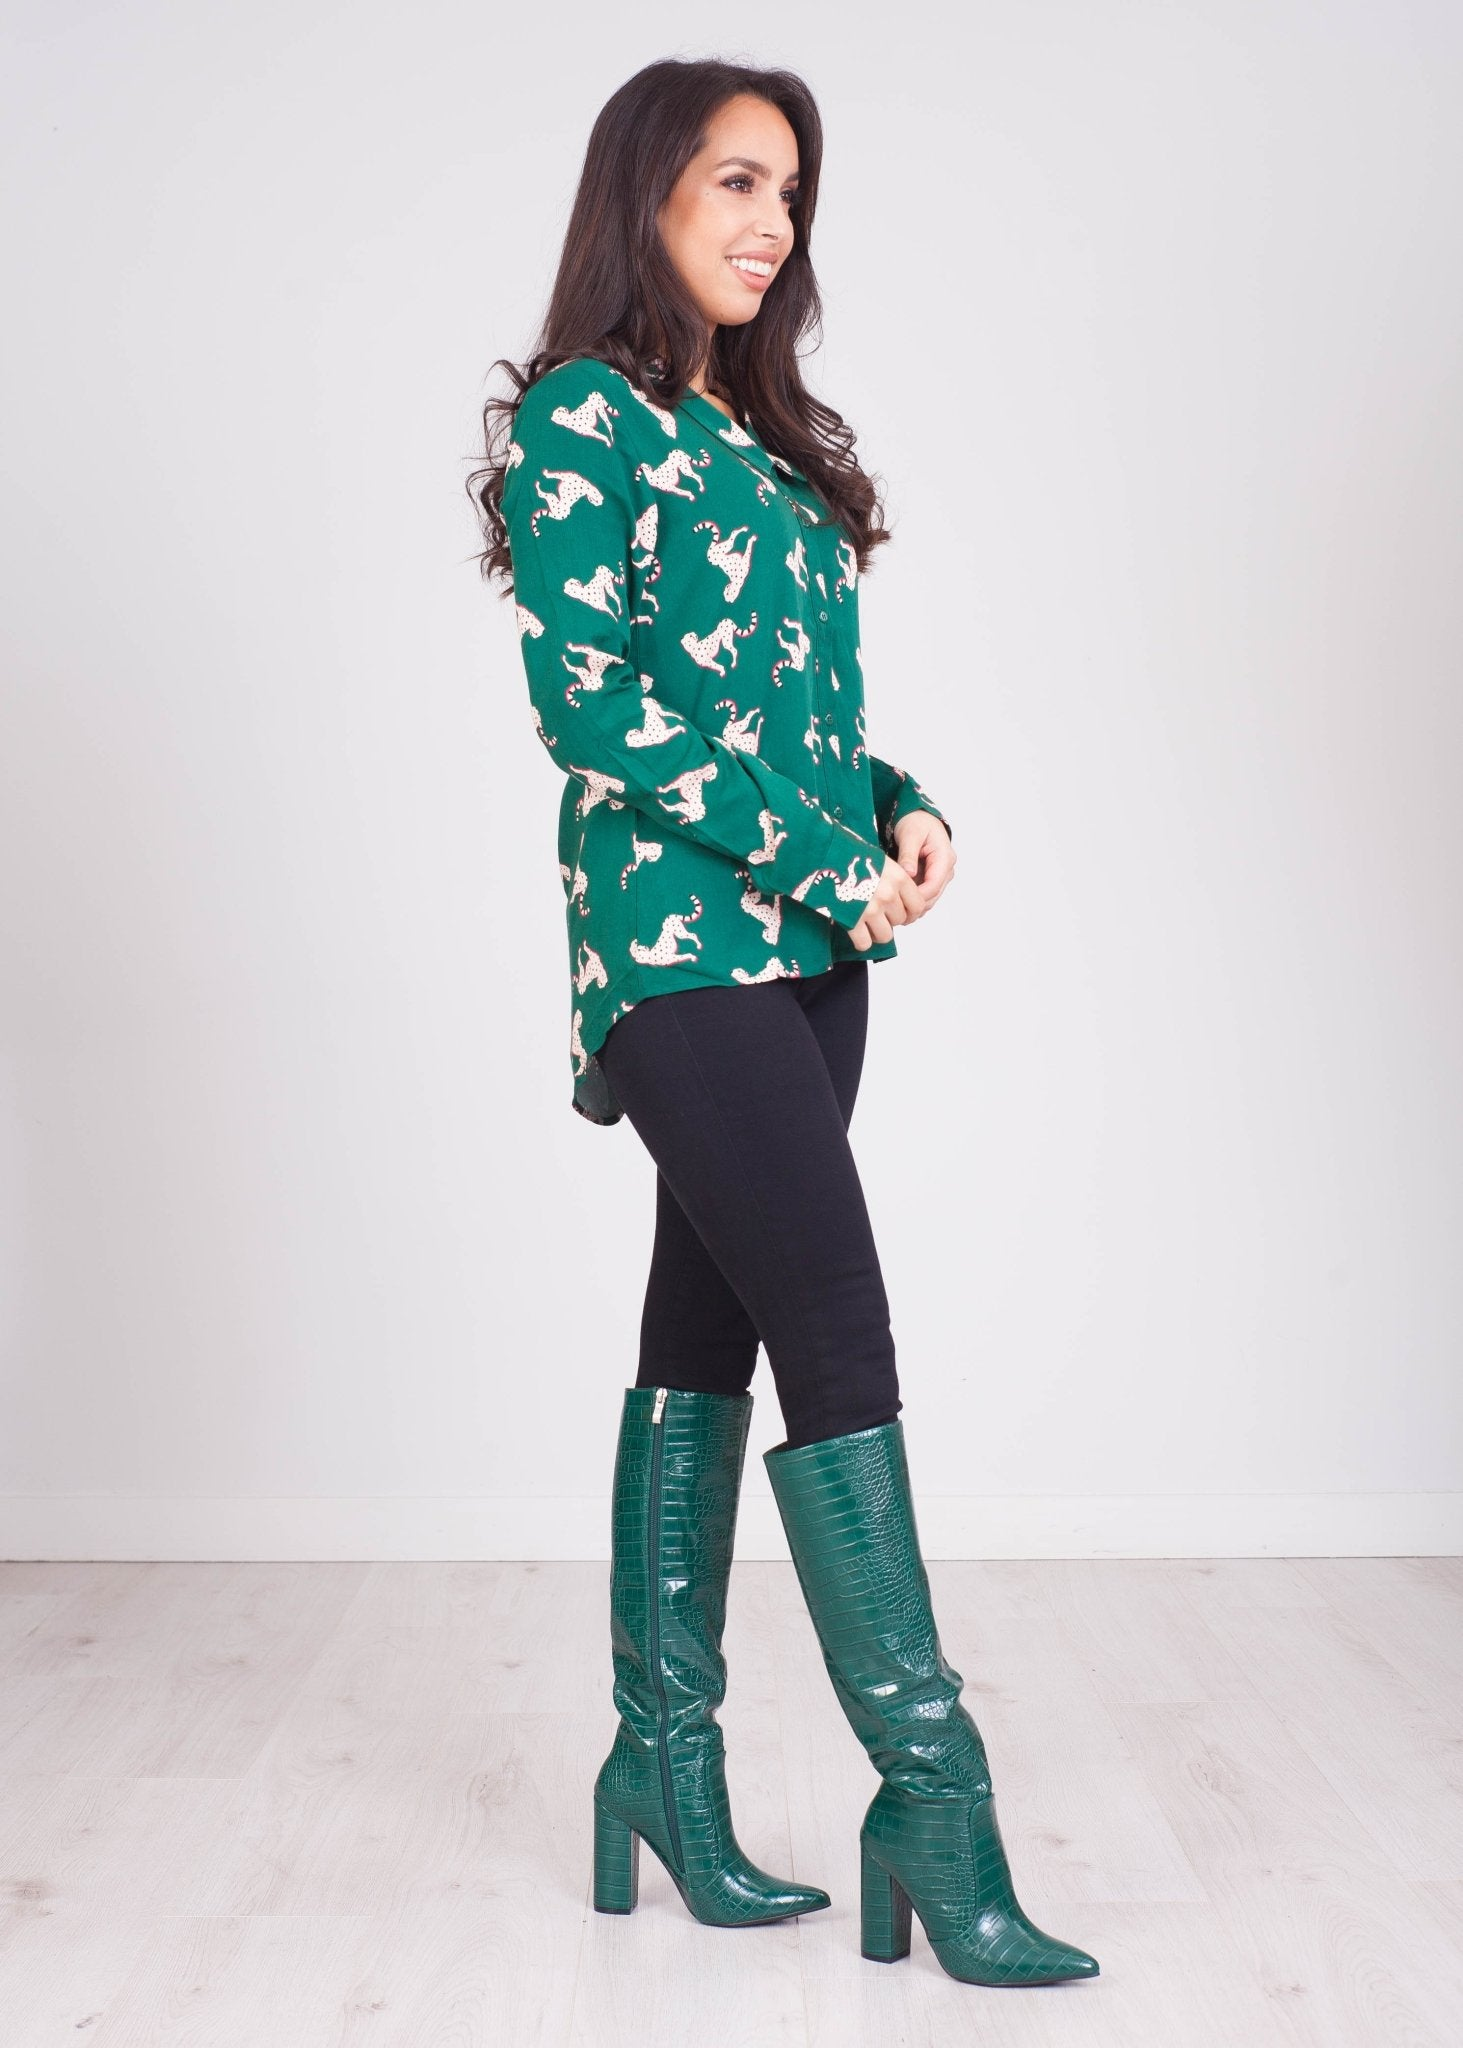 Frankie Green Leopard Shirt - The Walk in Wardrobe